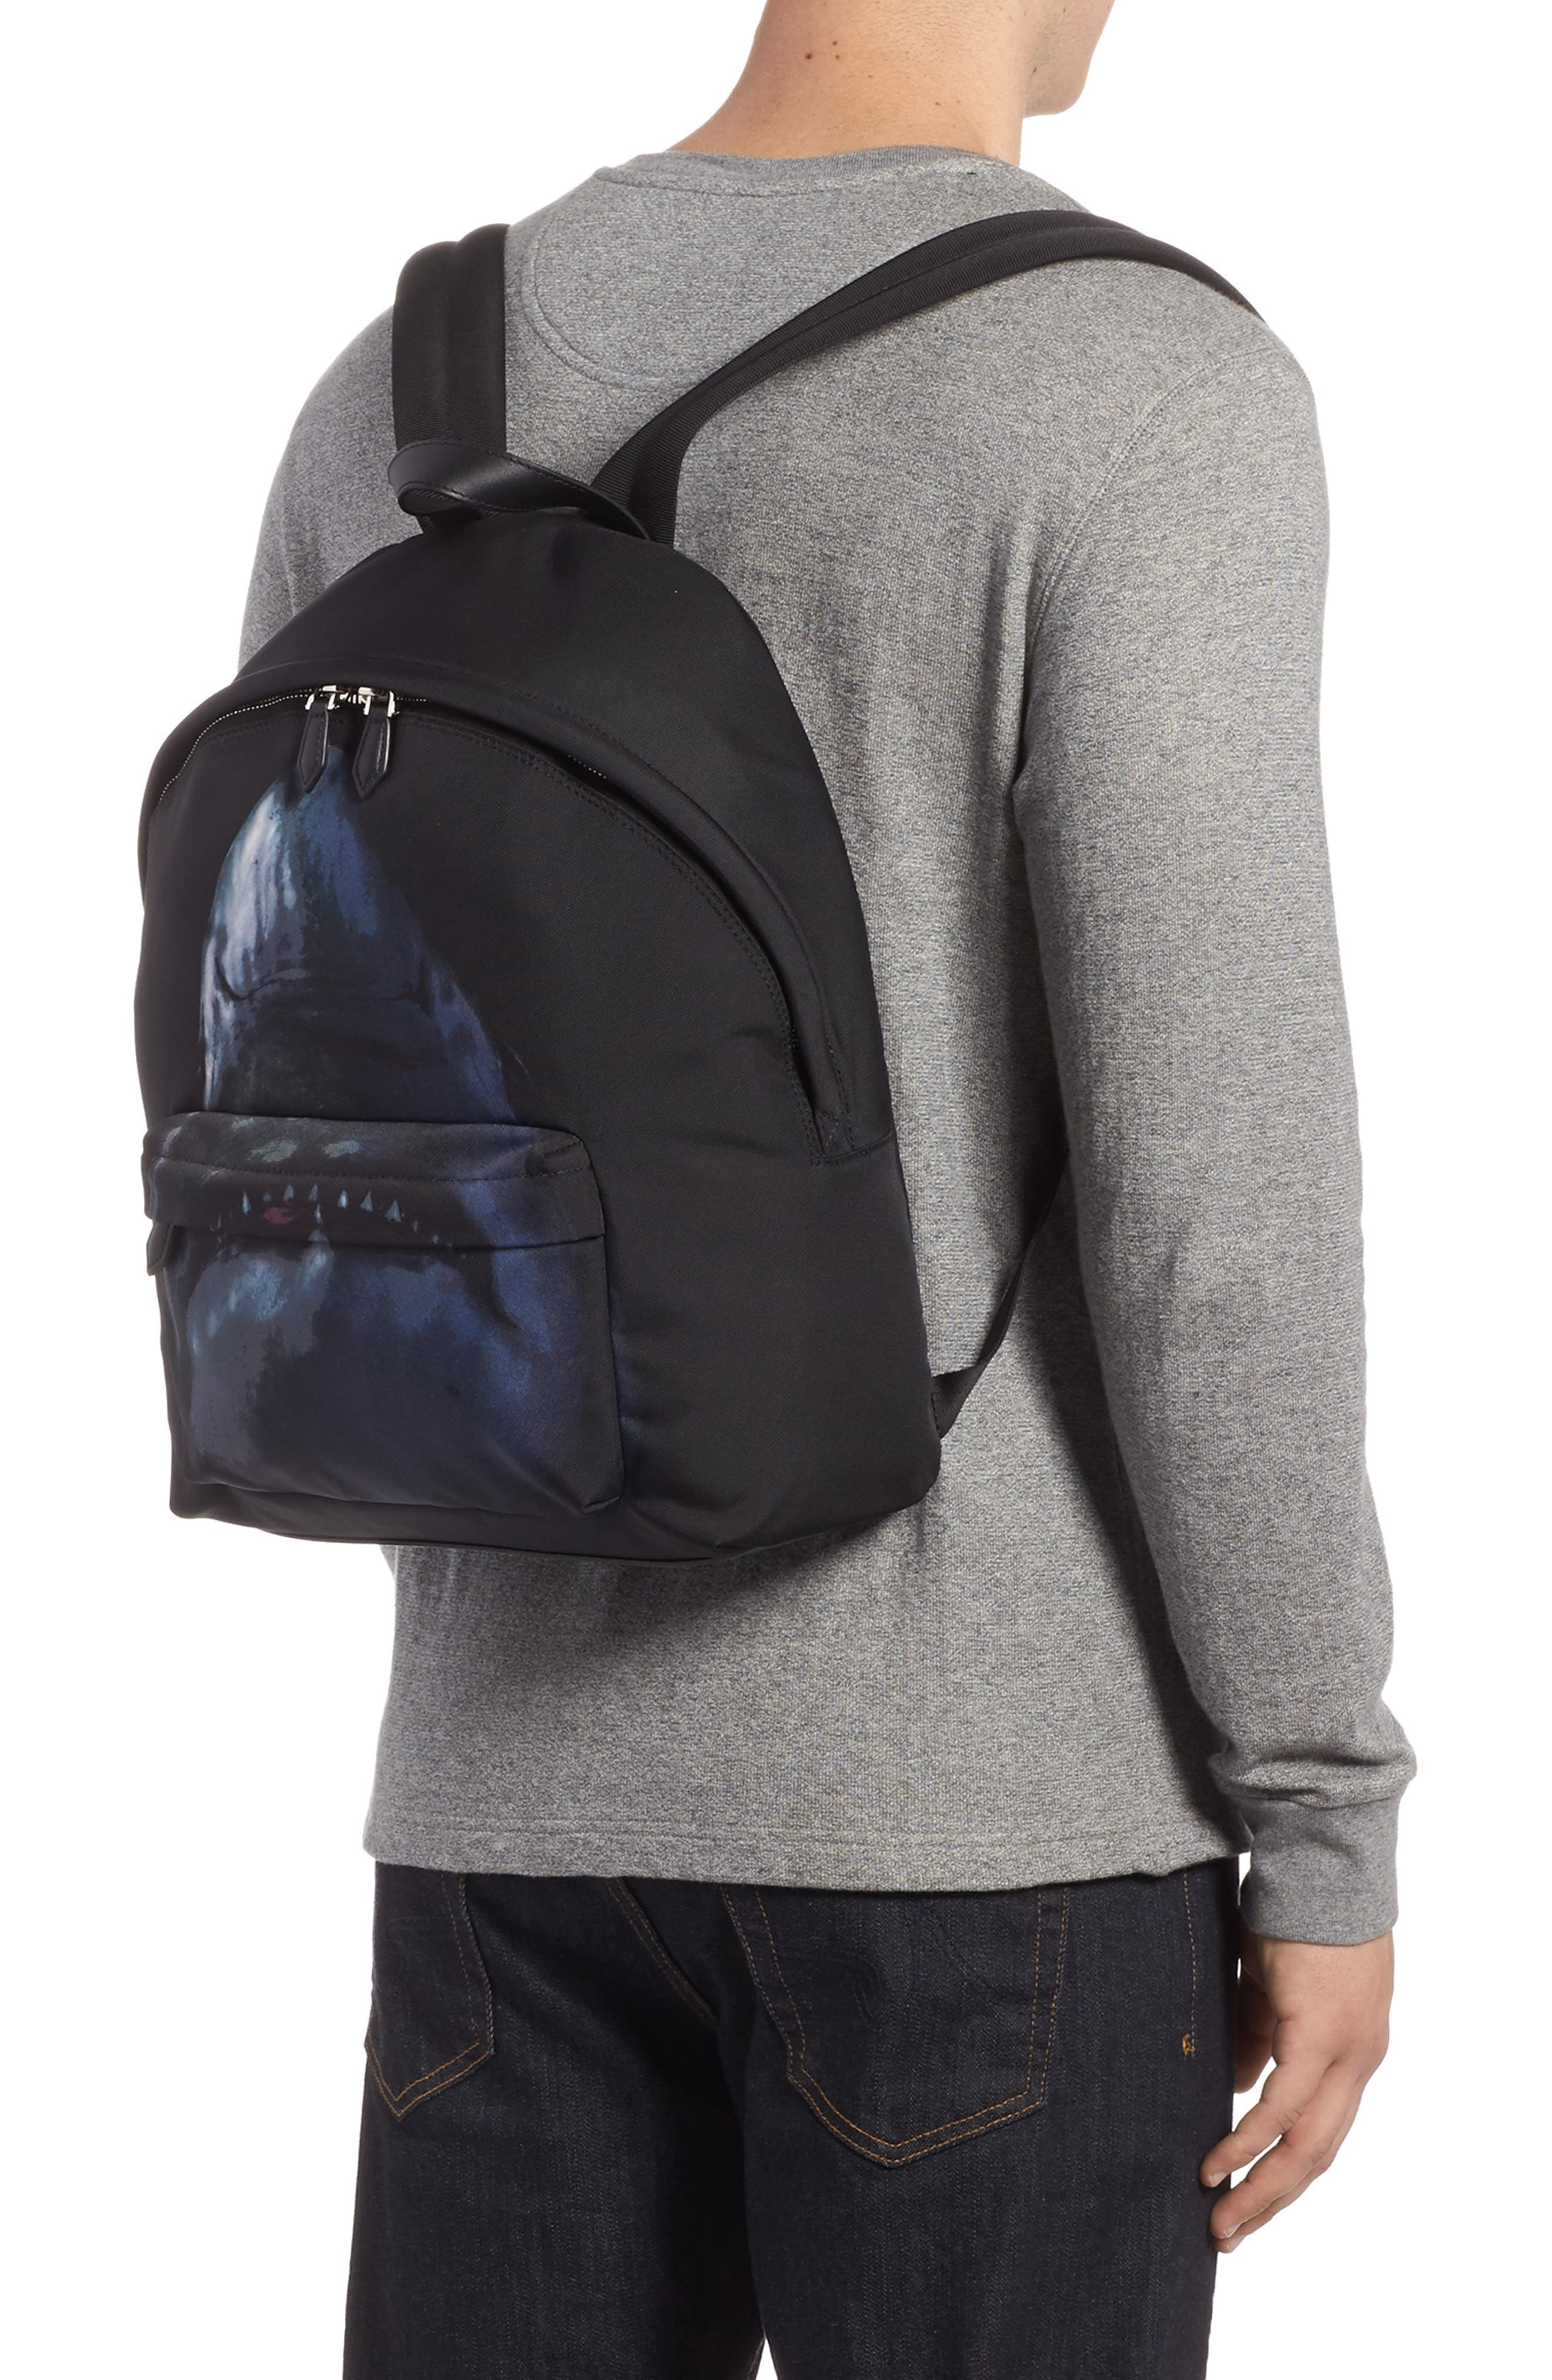 Shark Print Backpack,                             Alternate thumbnail 2, color,                             Multicolored